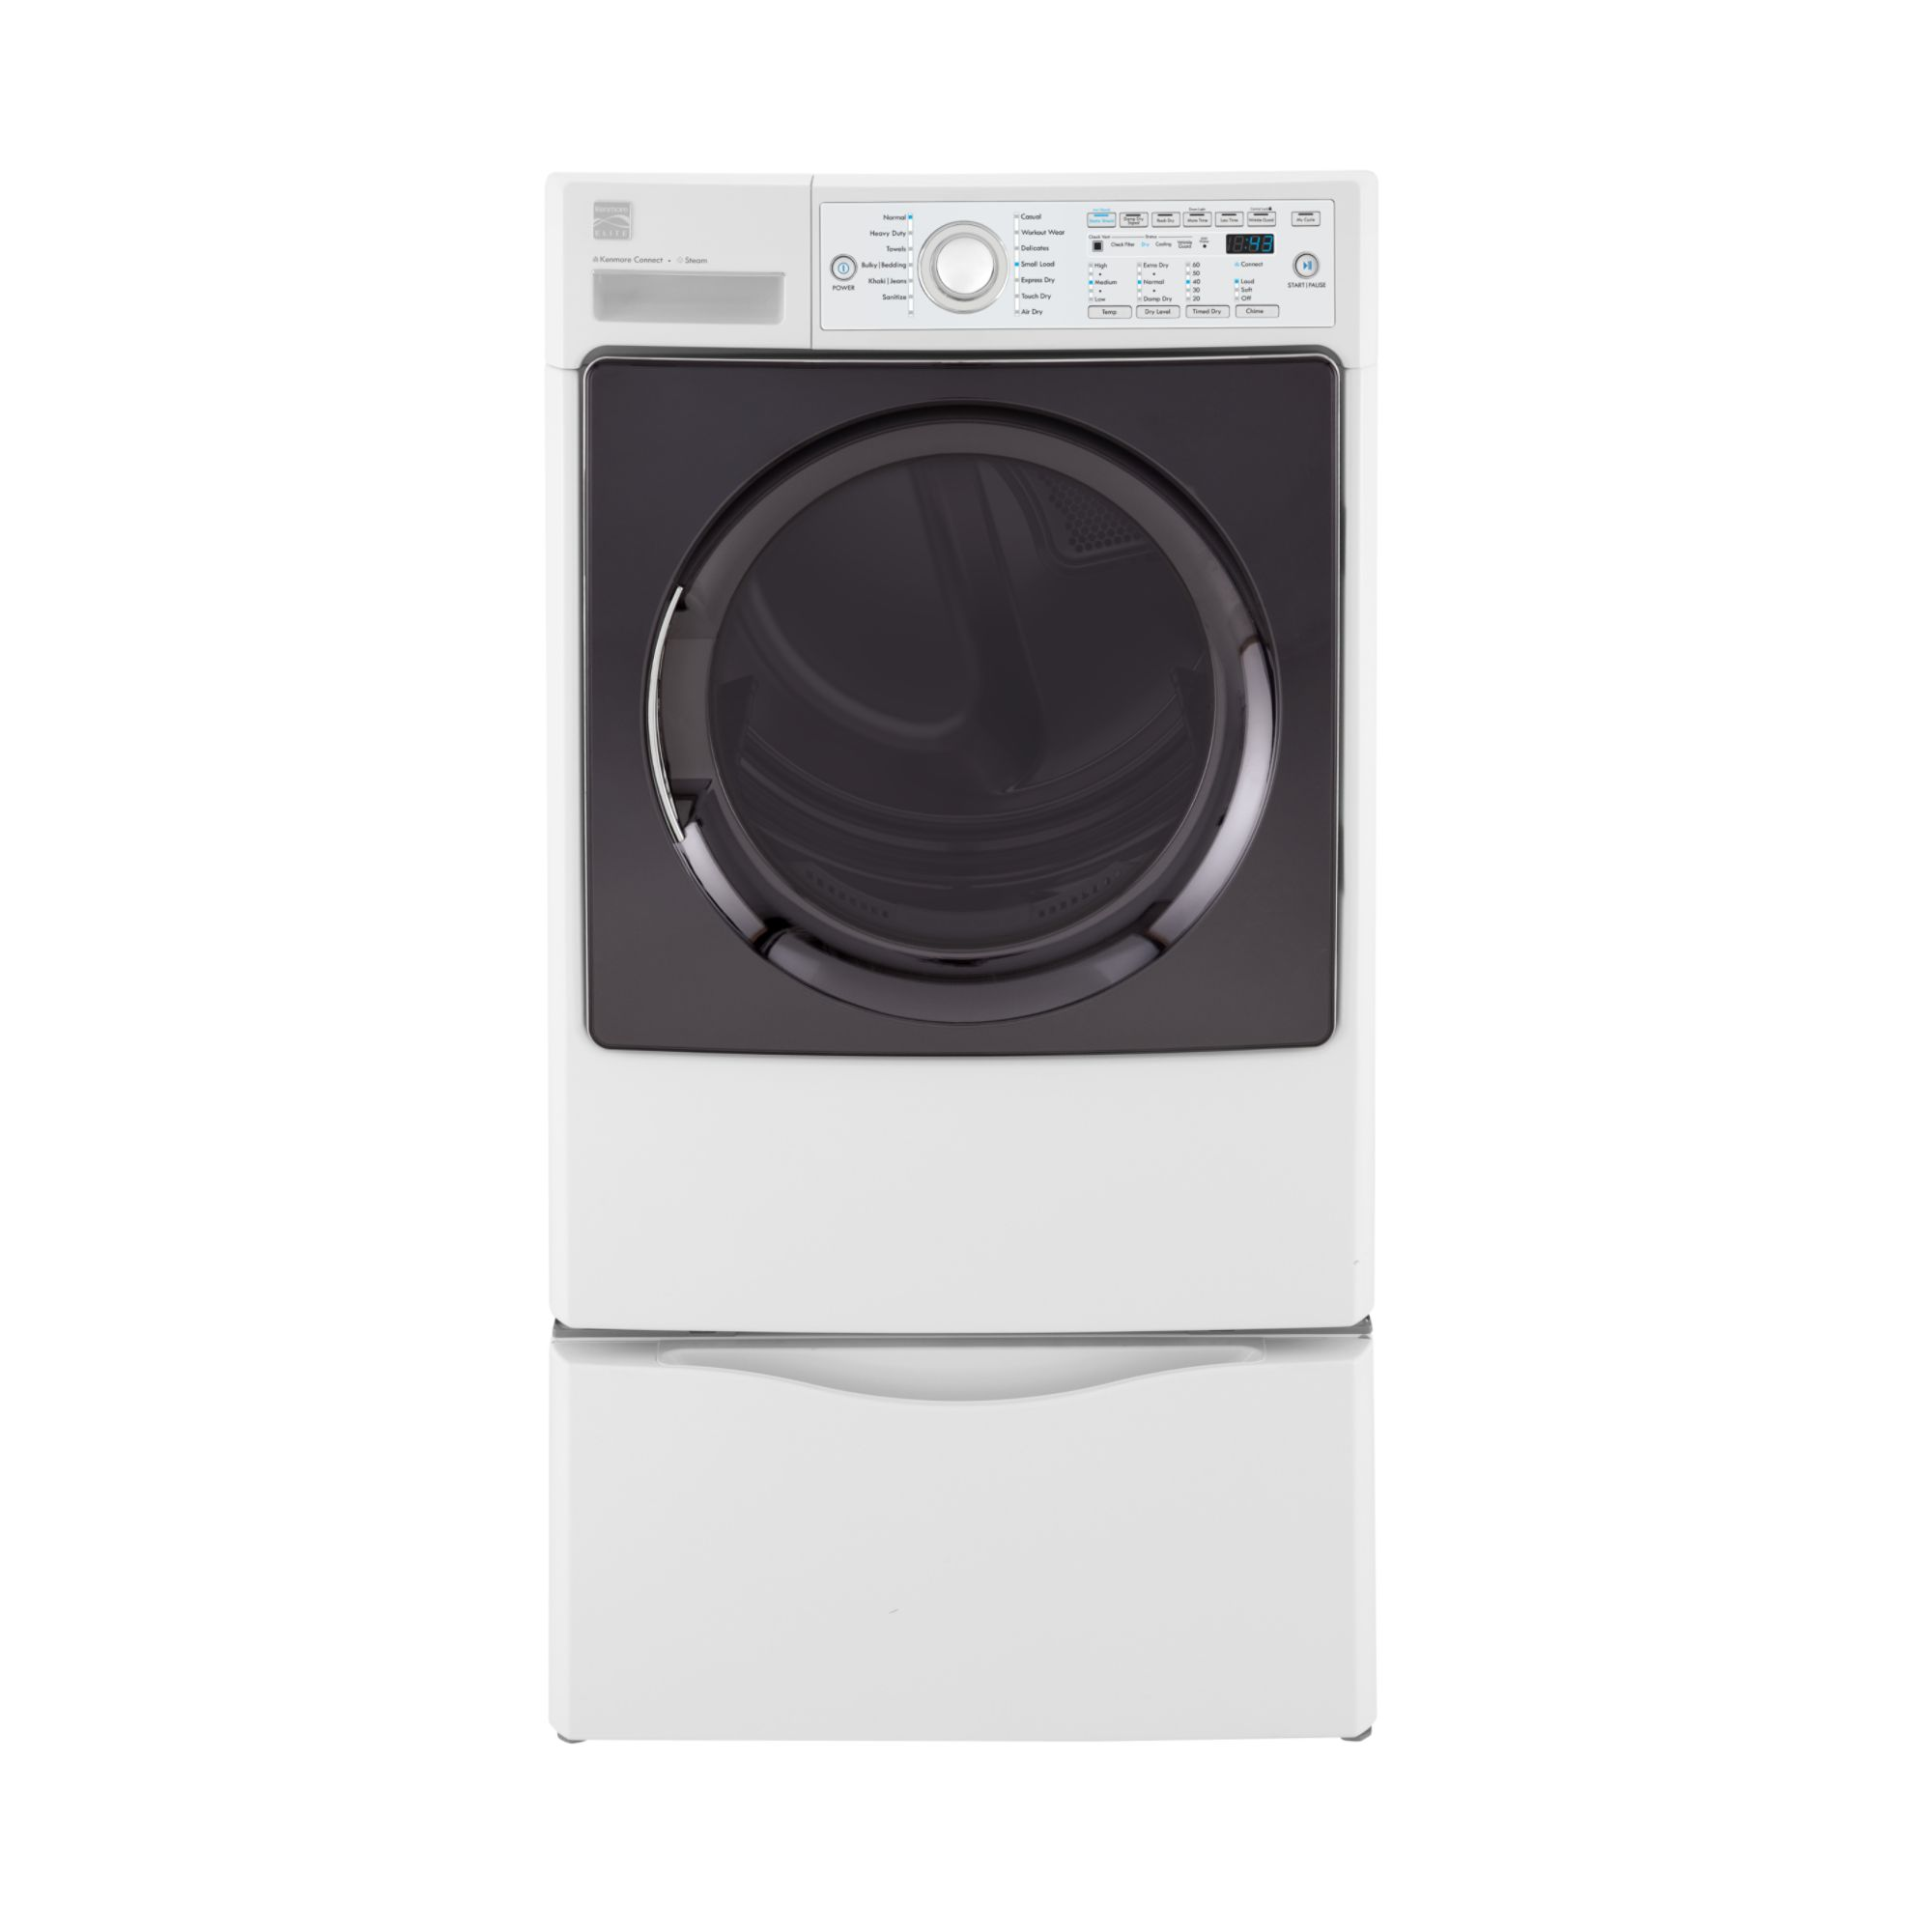 Kenmore Elite 7.4 cu. ft. Electric Steam Dryer - White